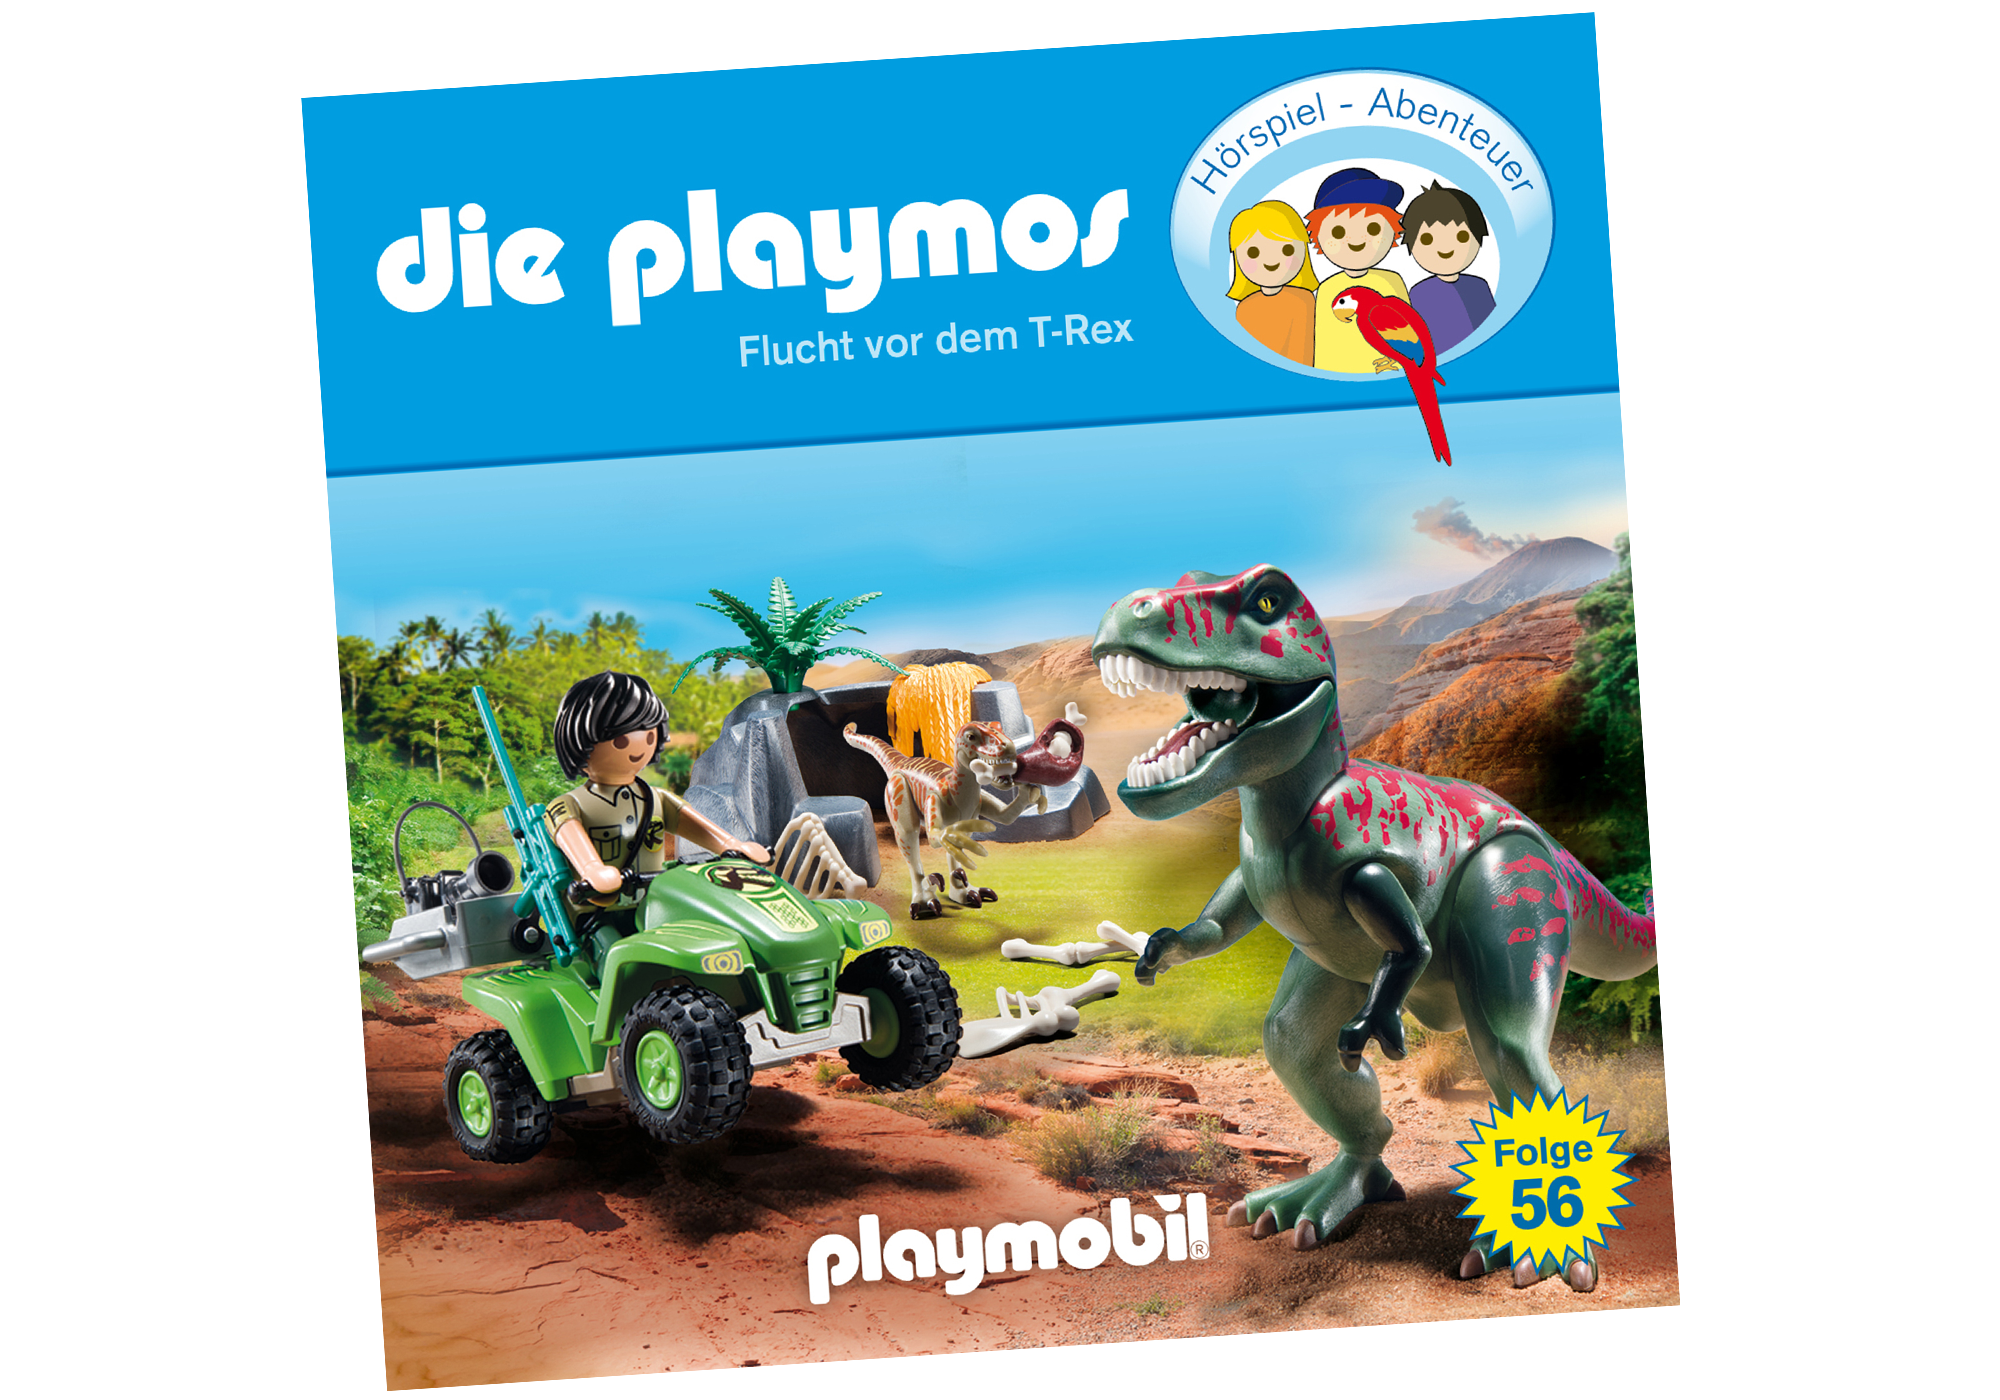 http://media.playmobil.com/i/playmobil/80008_product_detail